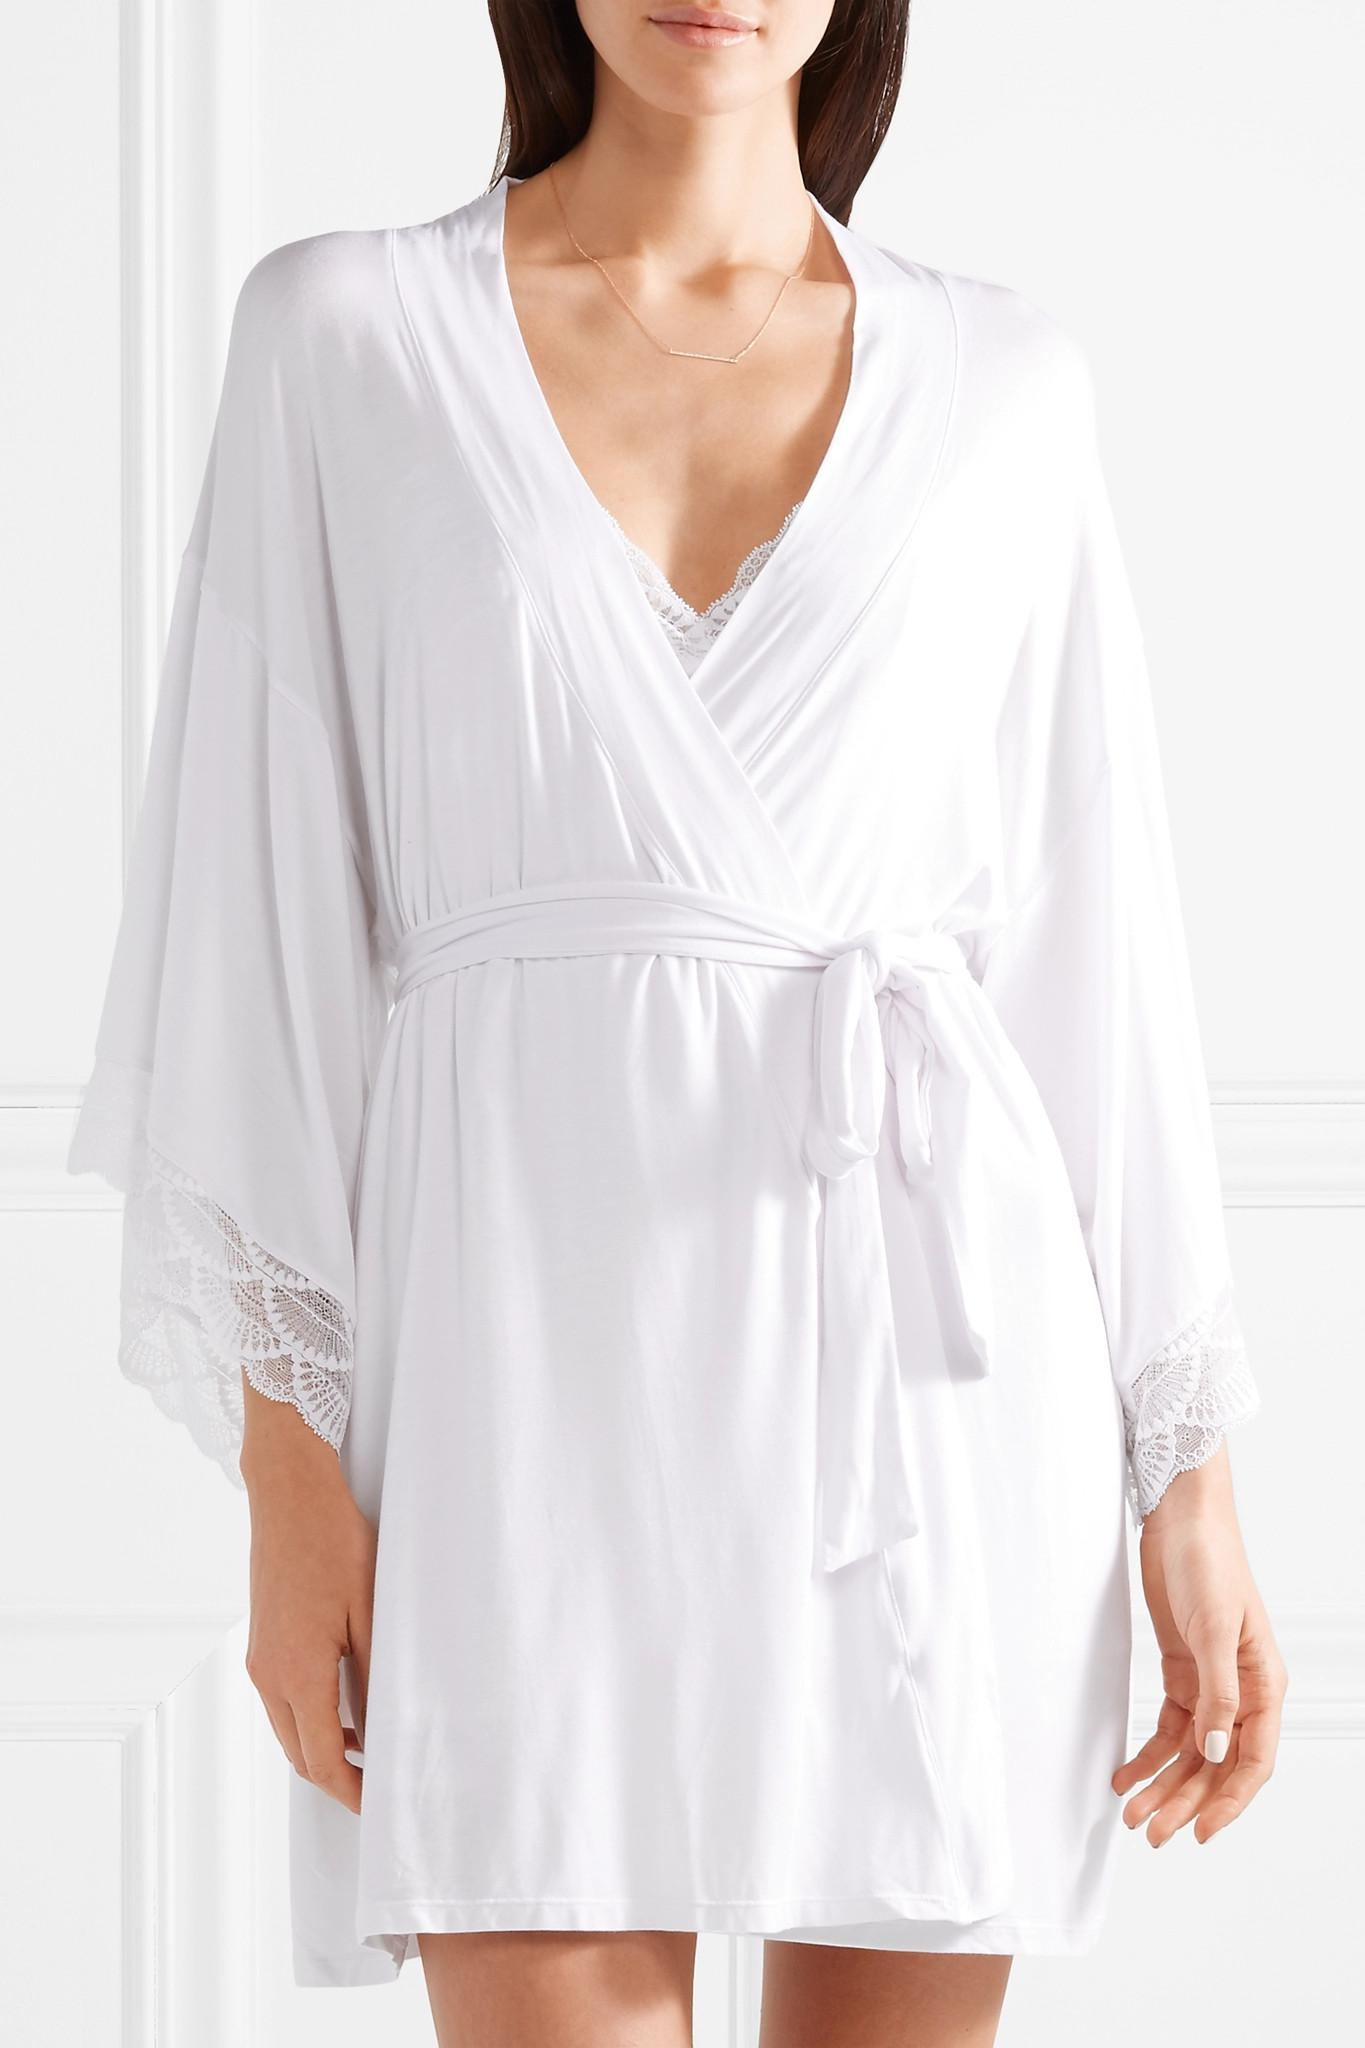 Matilda The Mademoiselle Lace-trimmed Stretch-modal Jersey Robe - White Eberjey Clearance Shop Offer Cost Sale Online Wide Range Of Cheap Online Footlocker Finishline For Sale Cheap Sale Choice FWS7qWX4T